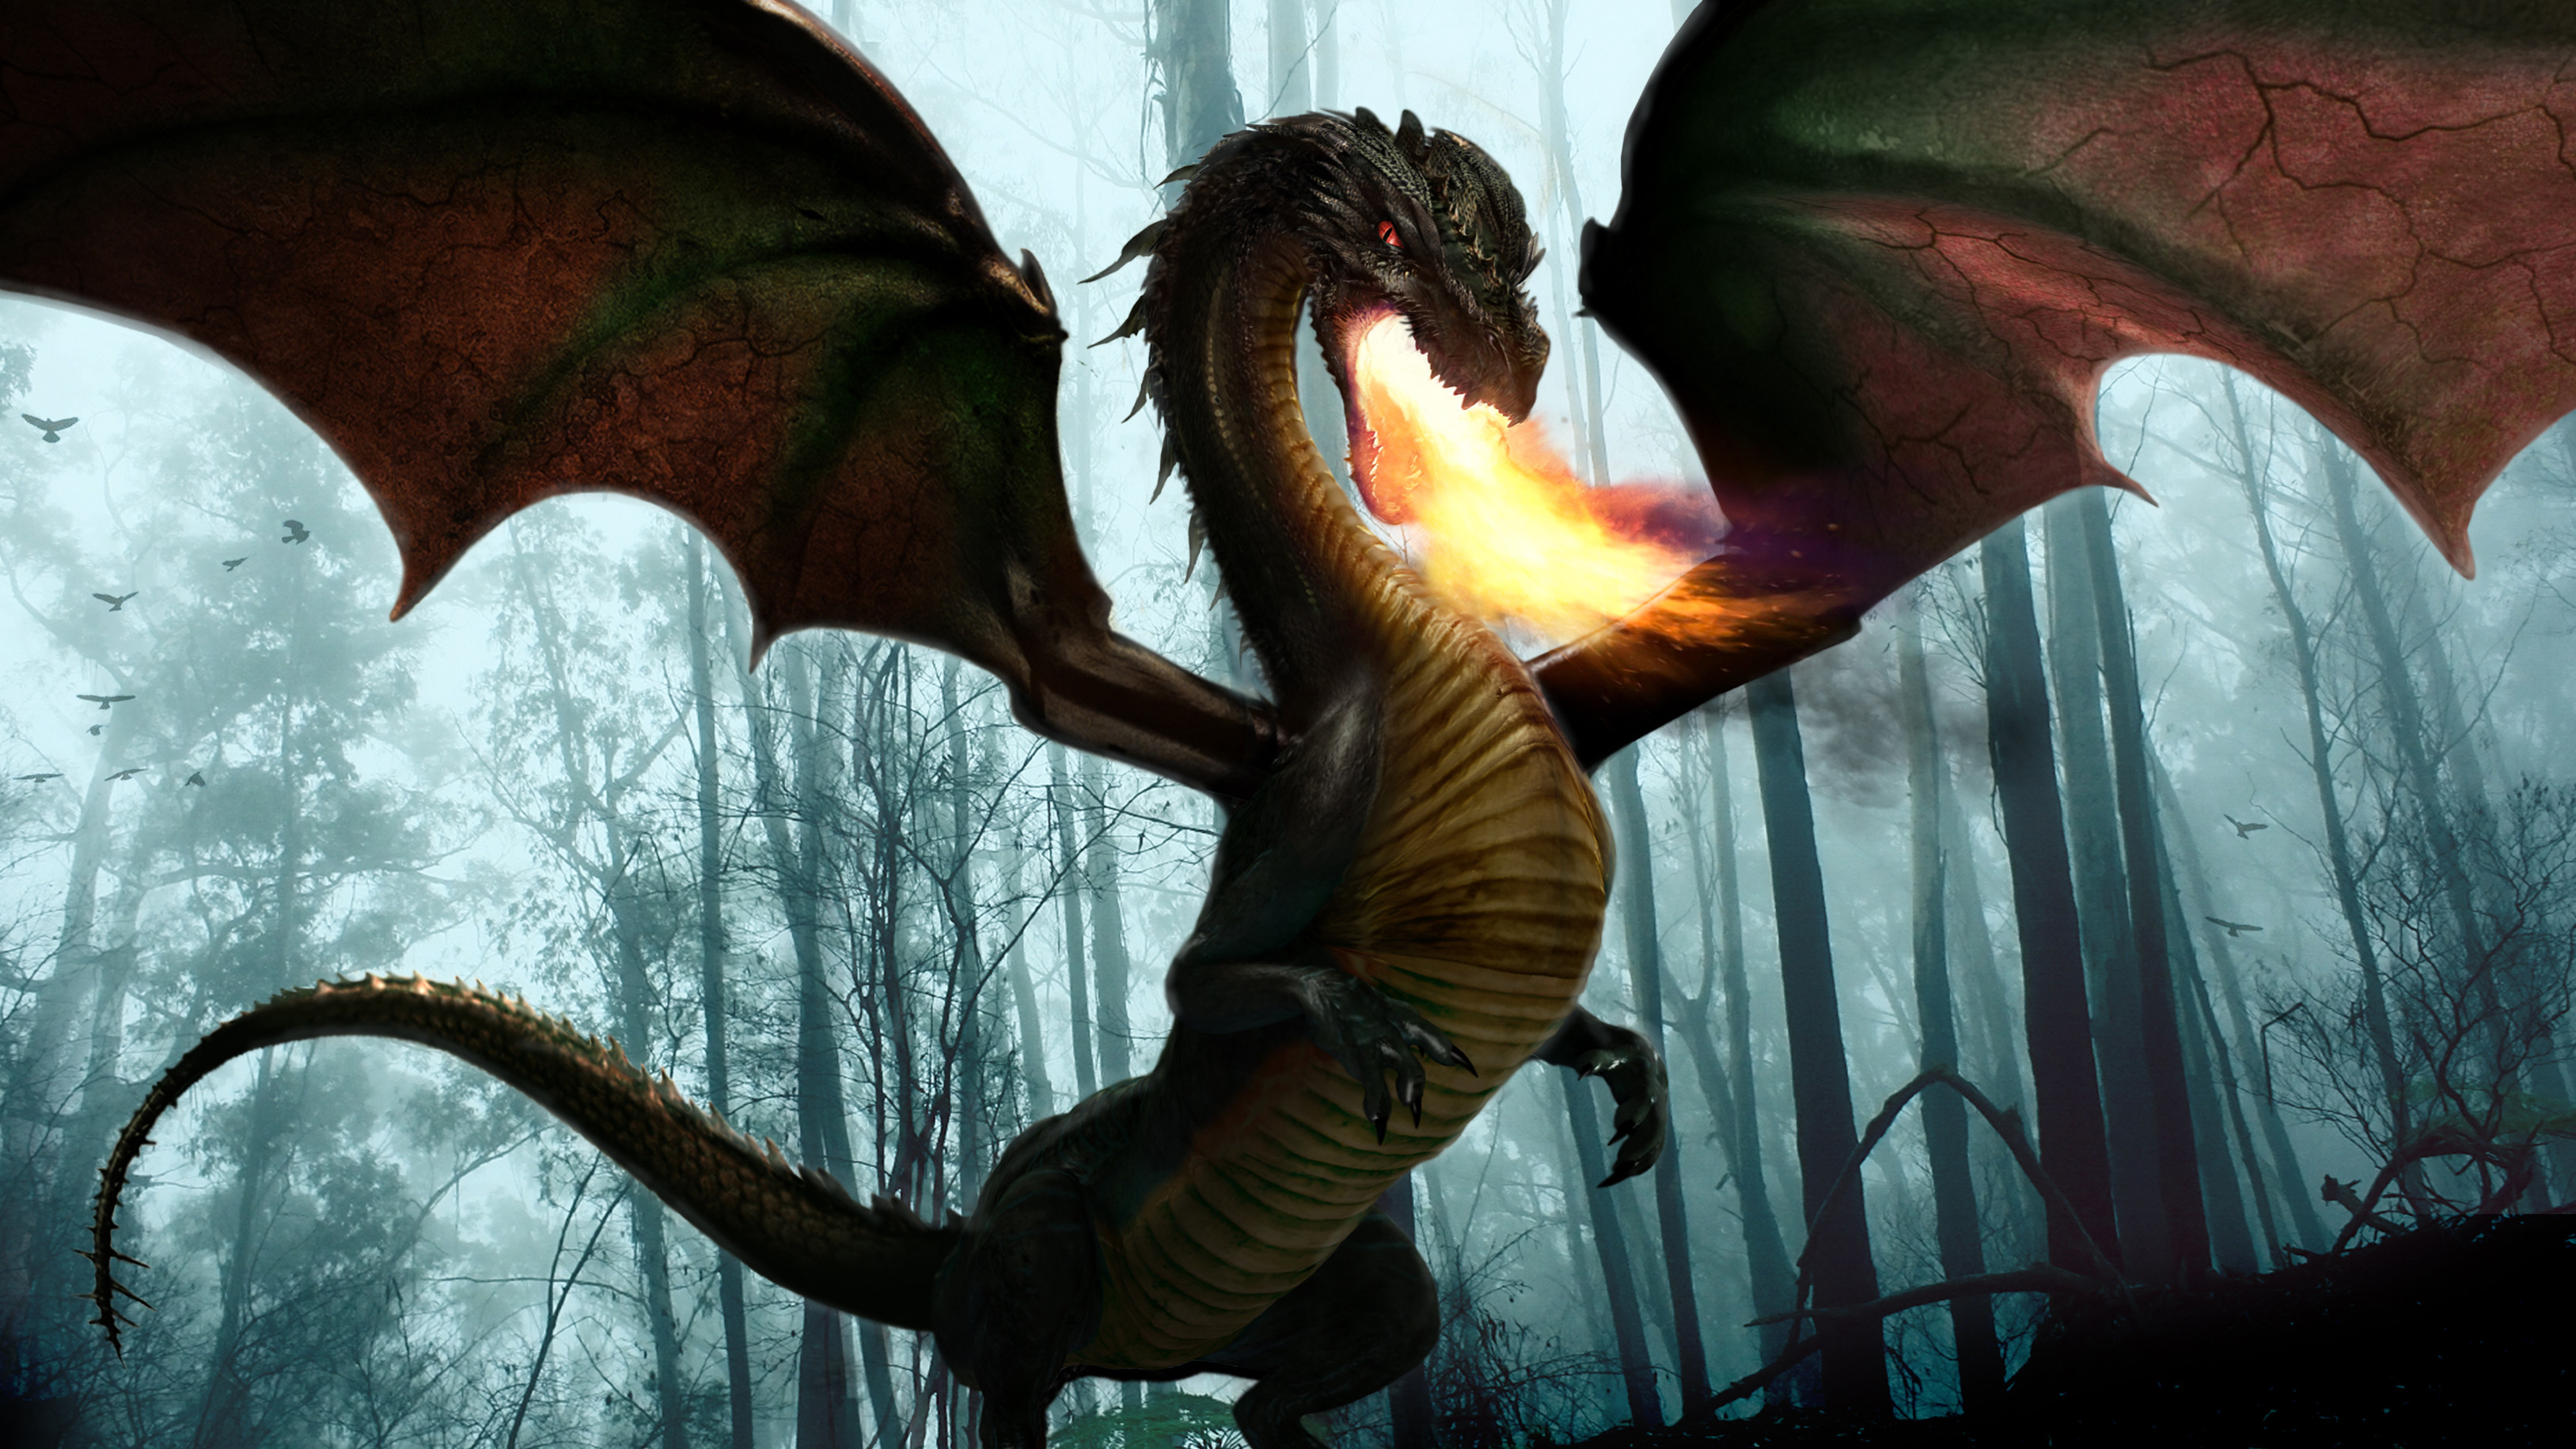 Lily the Dragon Concept - Once Upon  a Time Season 5